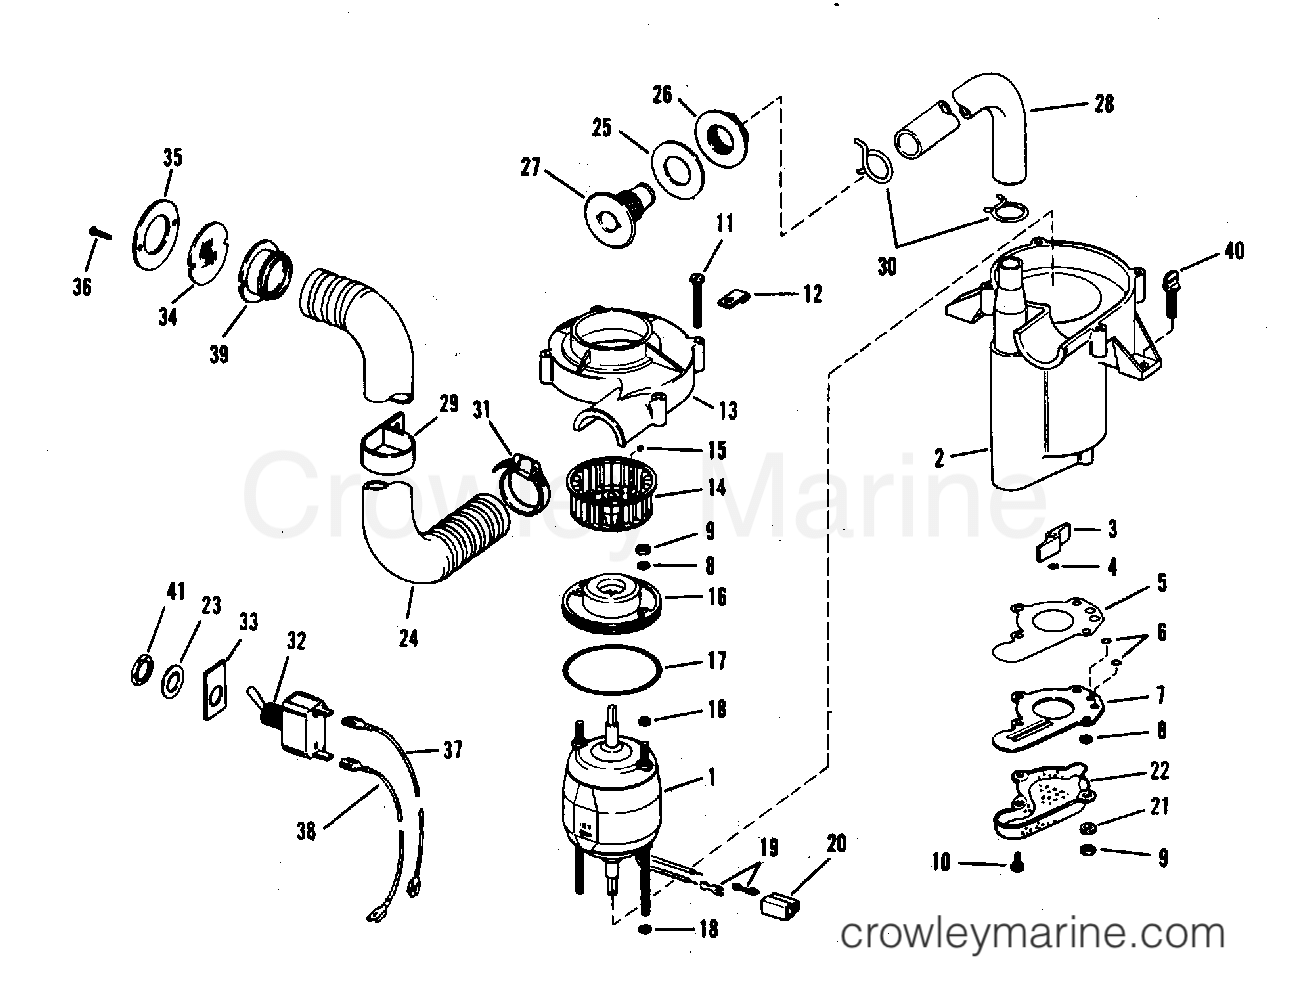 Bilge Pump And Vent Fan Assembly Part No